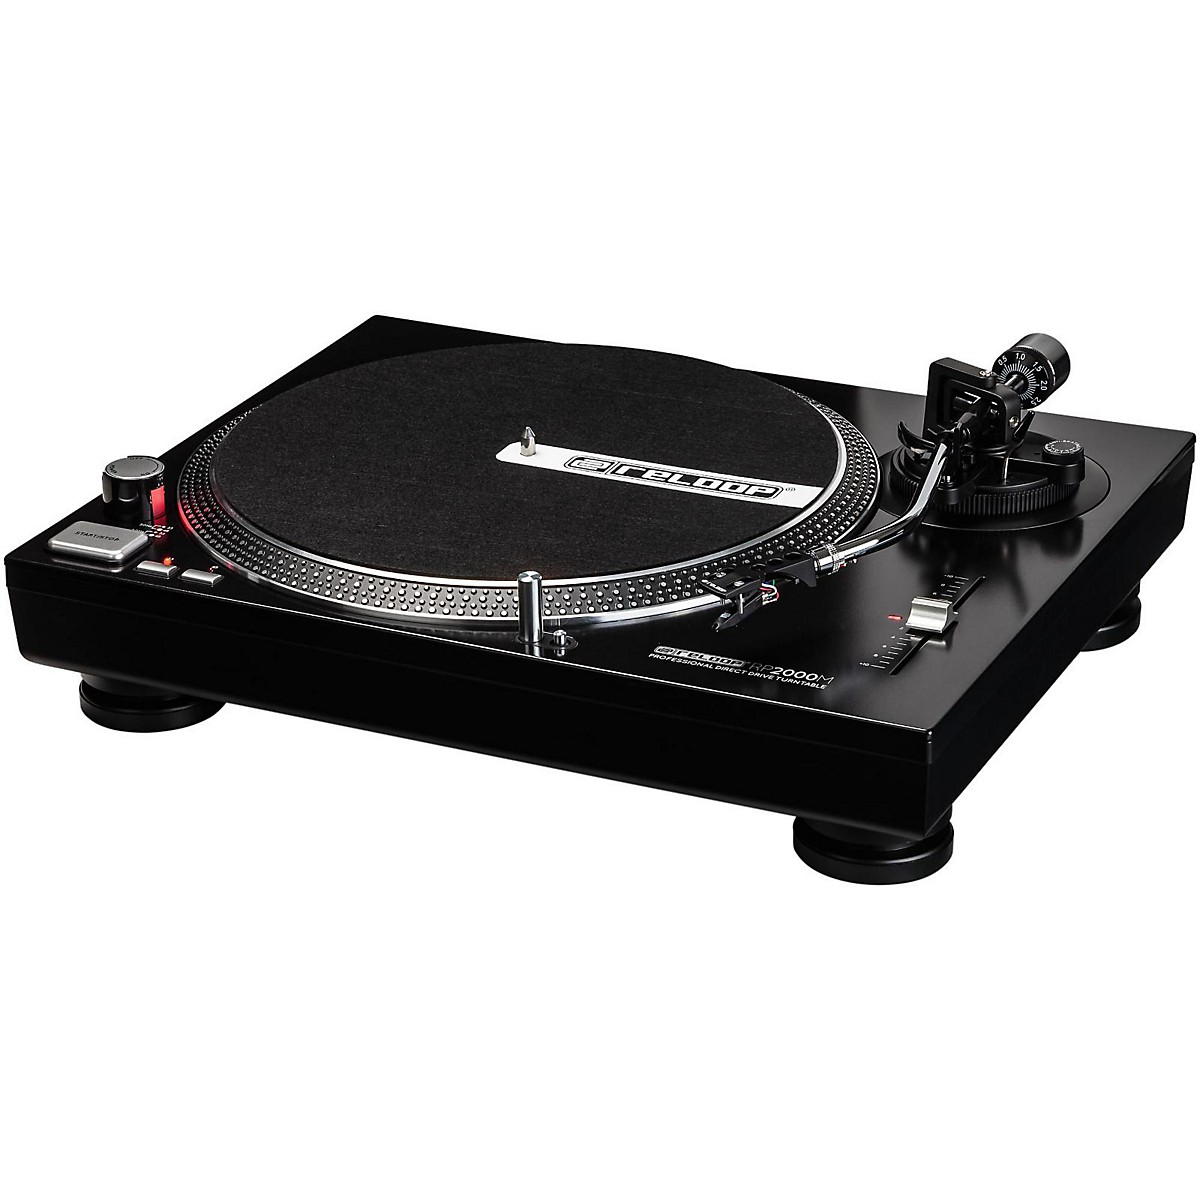 Reloop RP 2000 M Quartz Driven Turntable